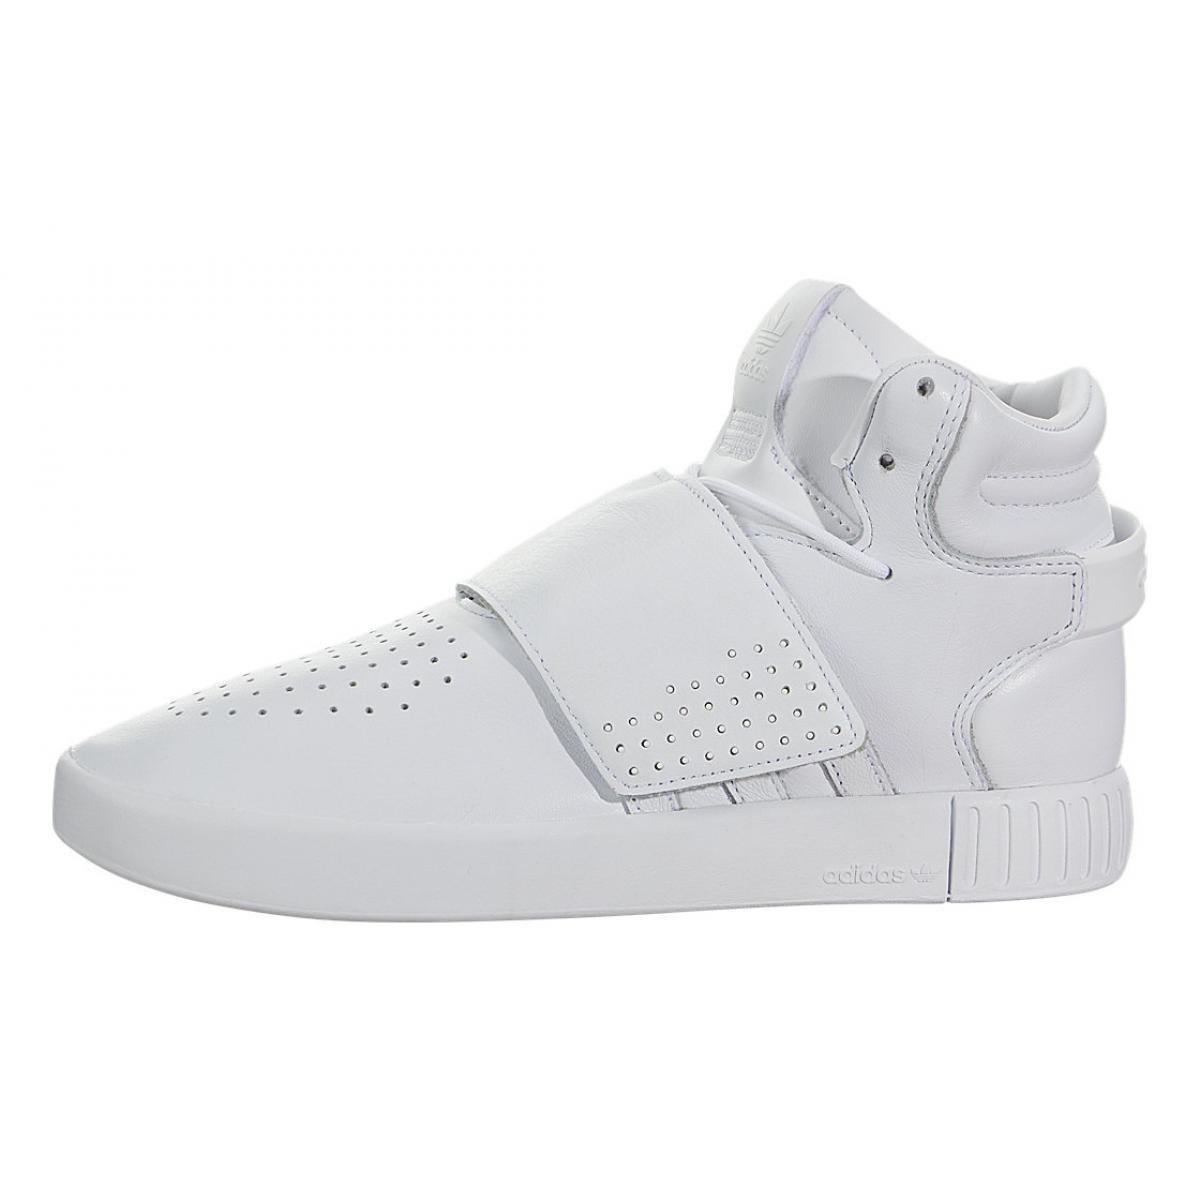 Gángster Rango microscópico  Shop for Adidas Tubular Invader Strap (Kids) Footwear White / Footwear  White BW0590 at lowest prices in Trainingkicks.com